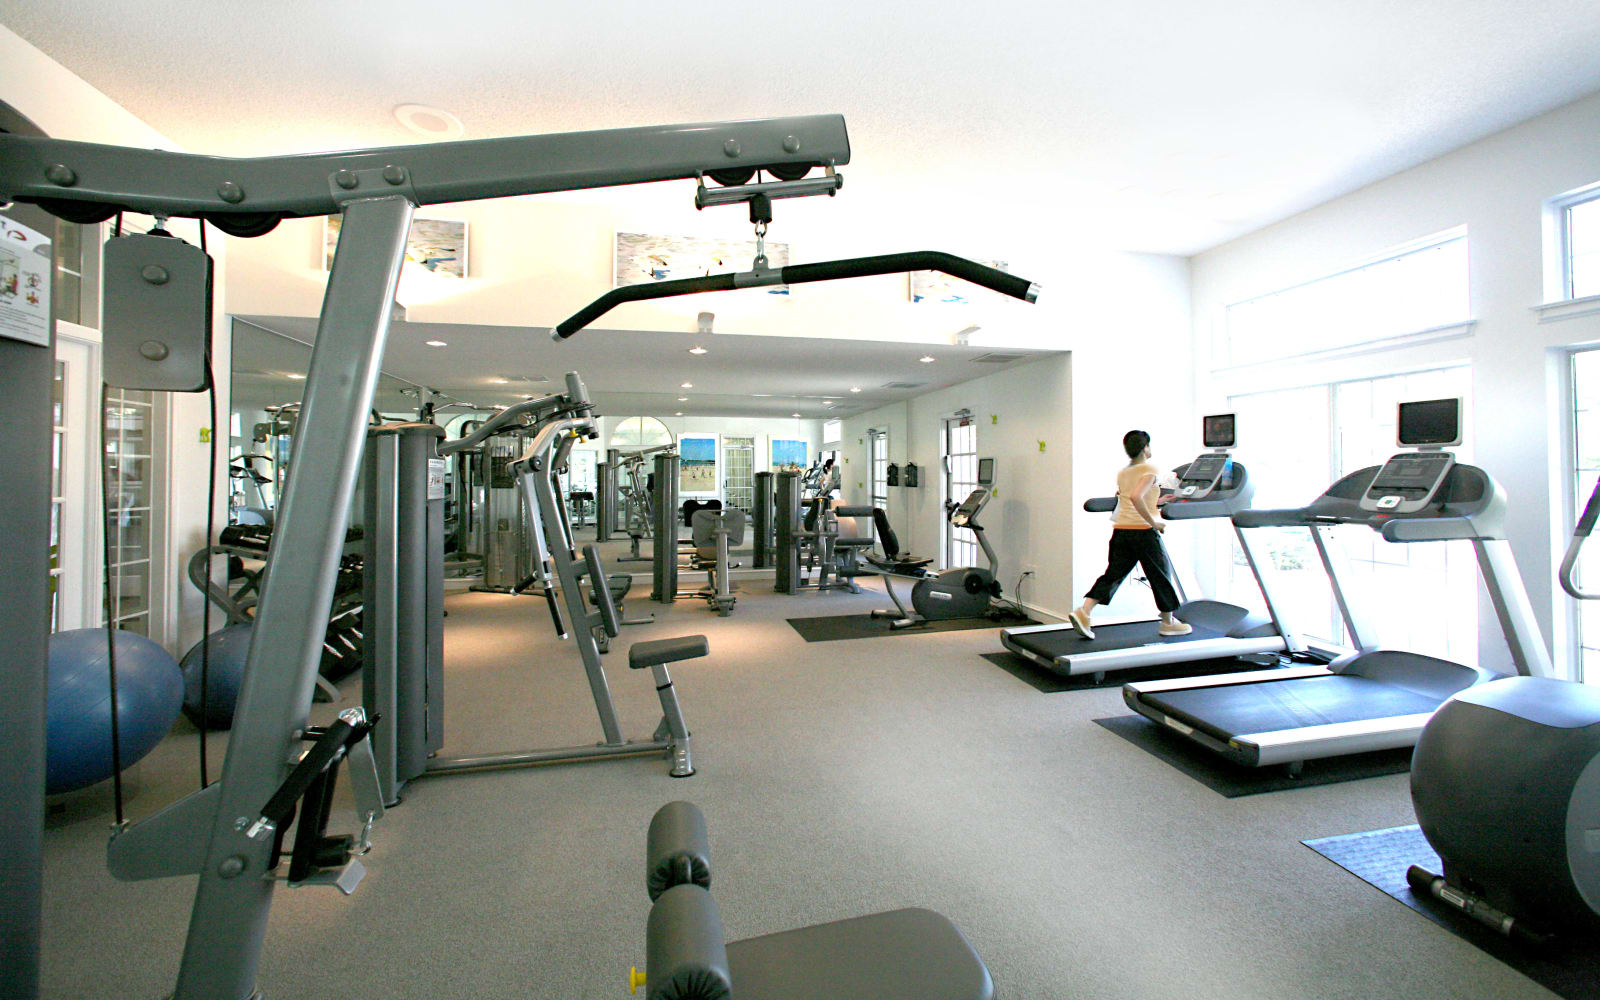 Fitness center in Farmington Hills, Michigan at Citation Club